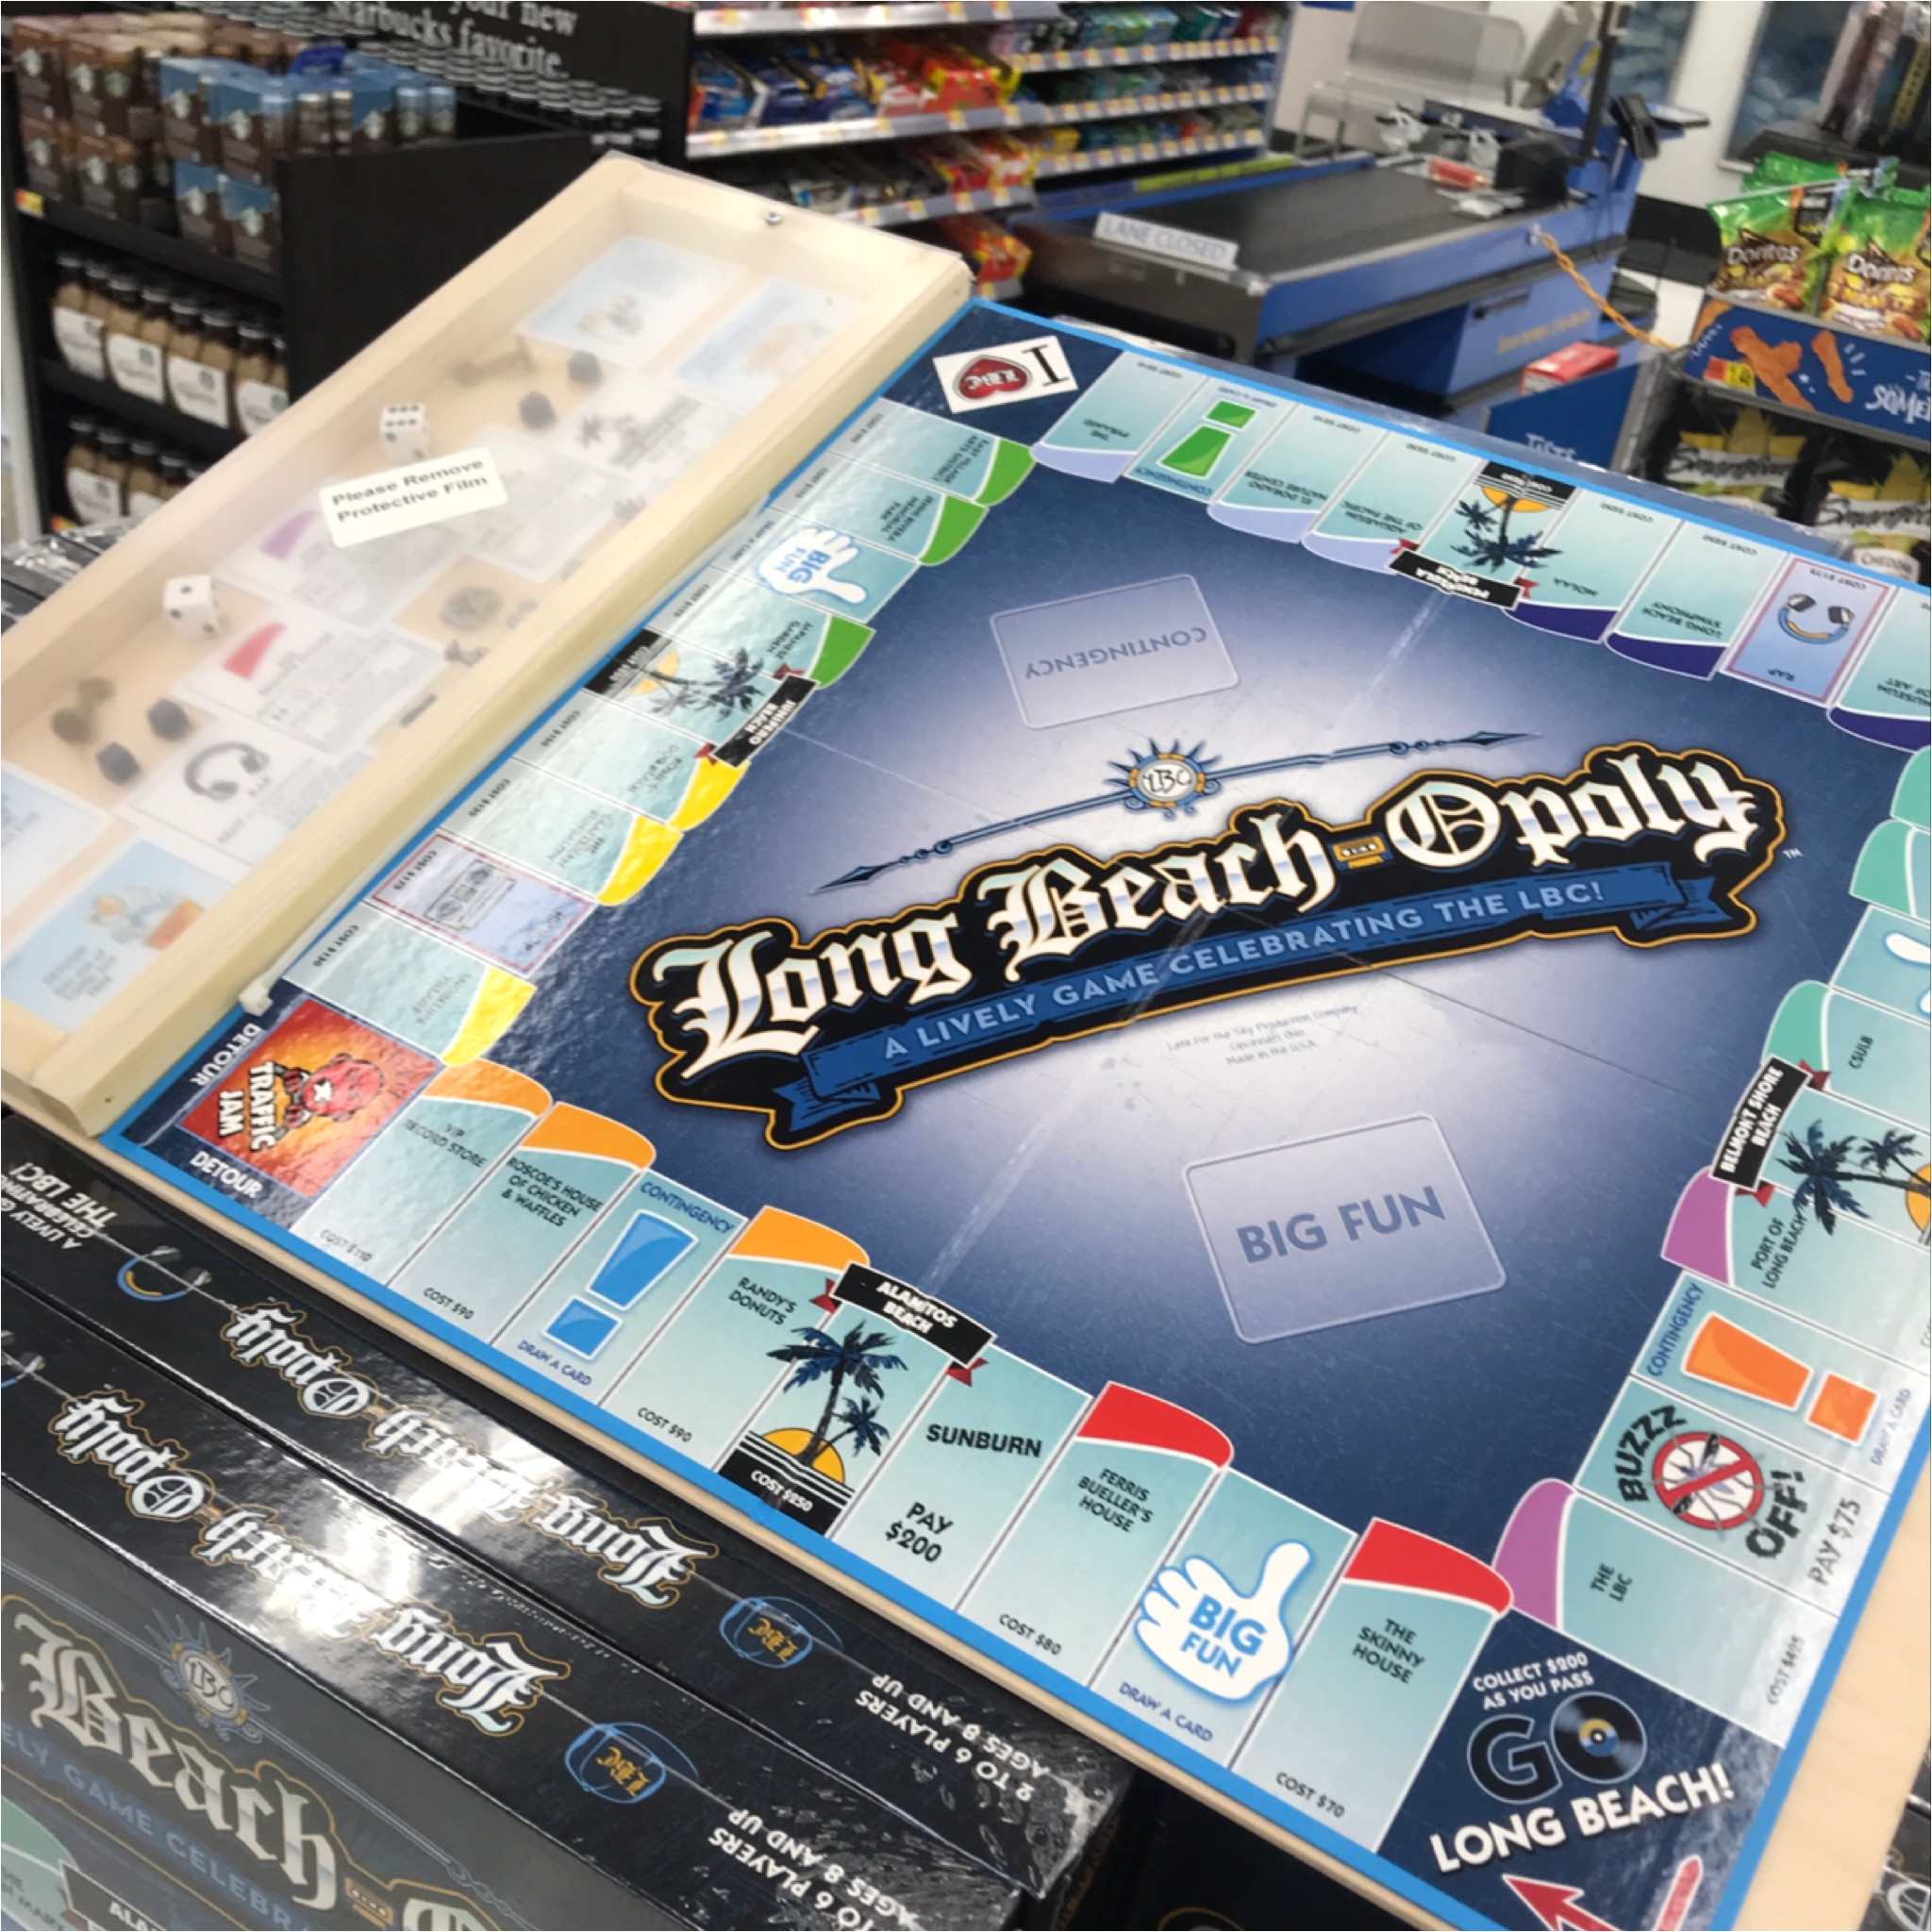 get walmart hours driving directions and check out weekly specials at your long beach supercenter 7250 carson blvd long beach ca 90808 walmart com